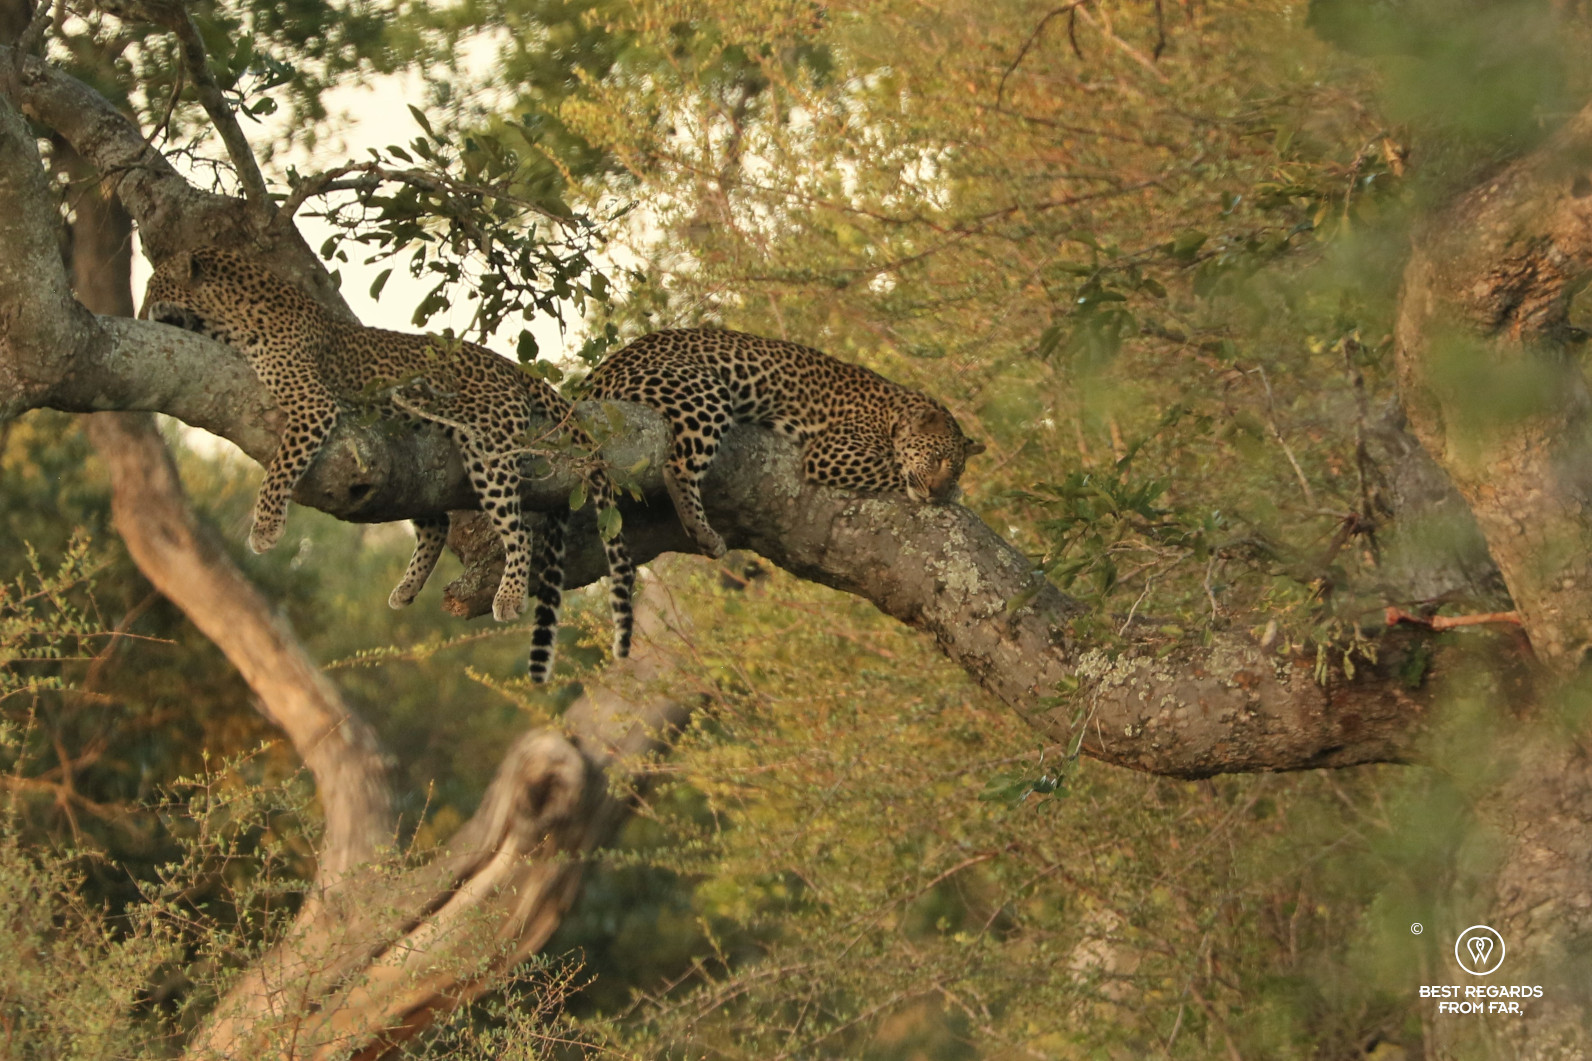 Two leopards sleeping on a tree branch in the Kruger Park with their impala kill next to them